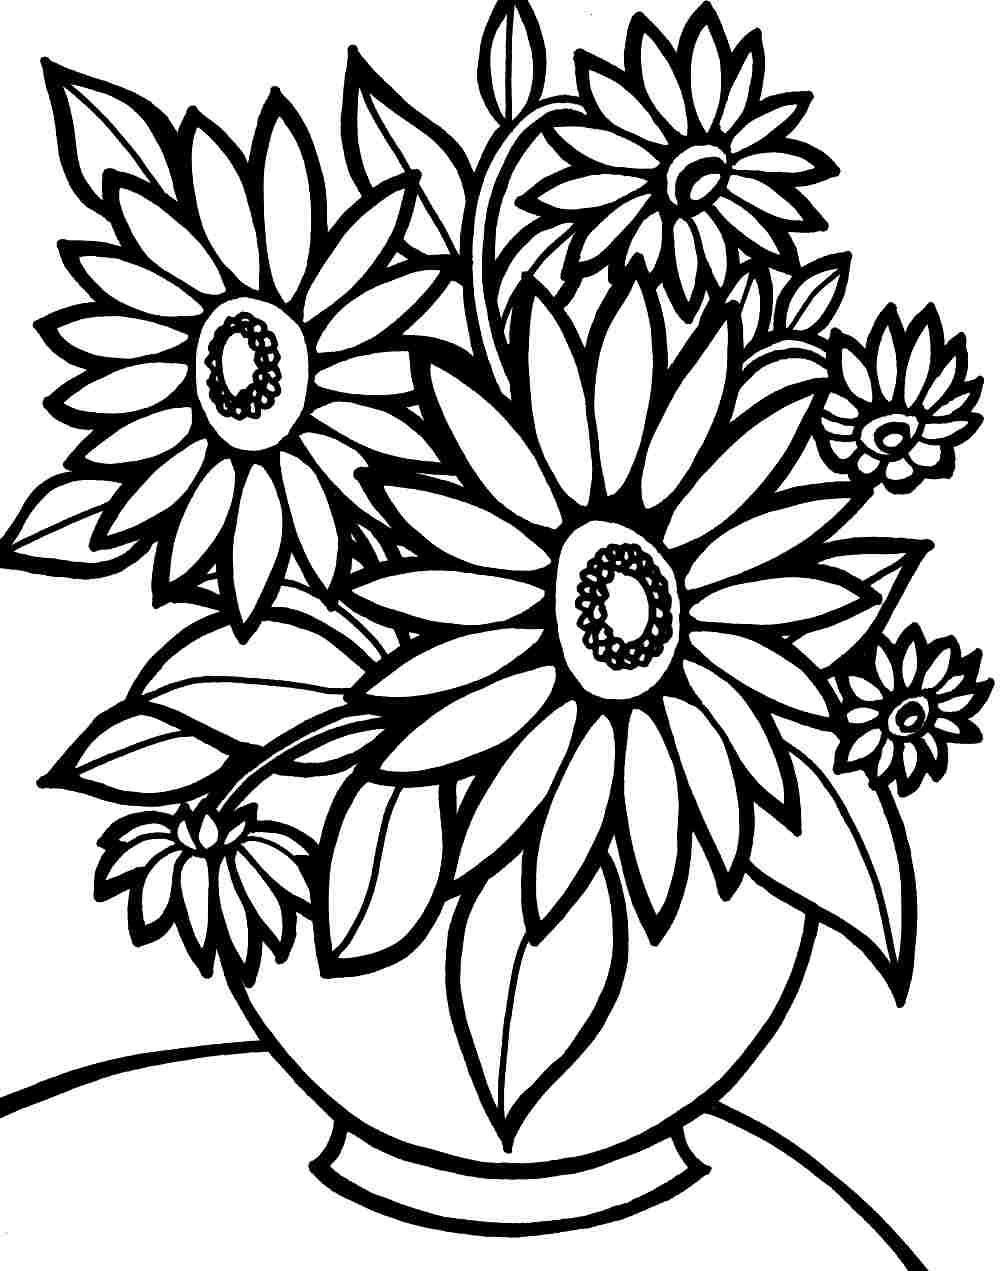 Colouring Pages Bouquet Flowers Printable Free For Kids & Girls ...